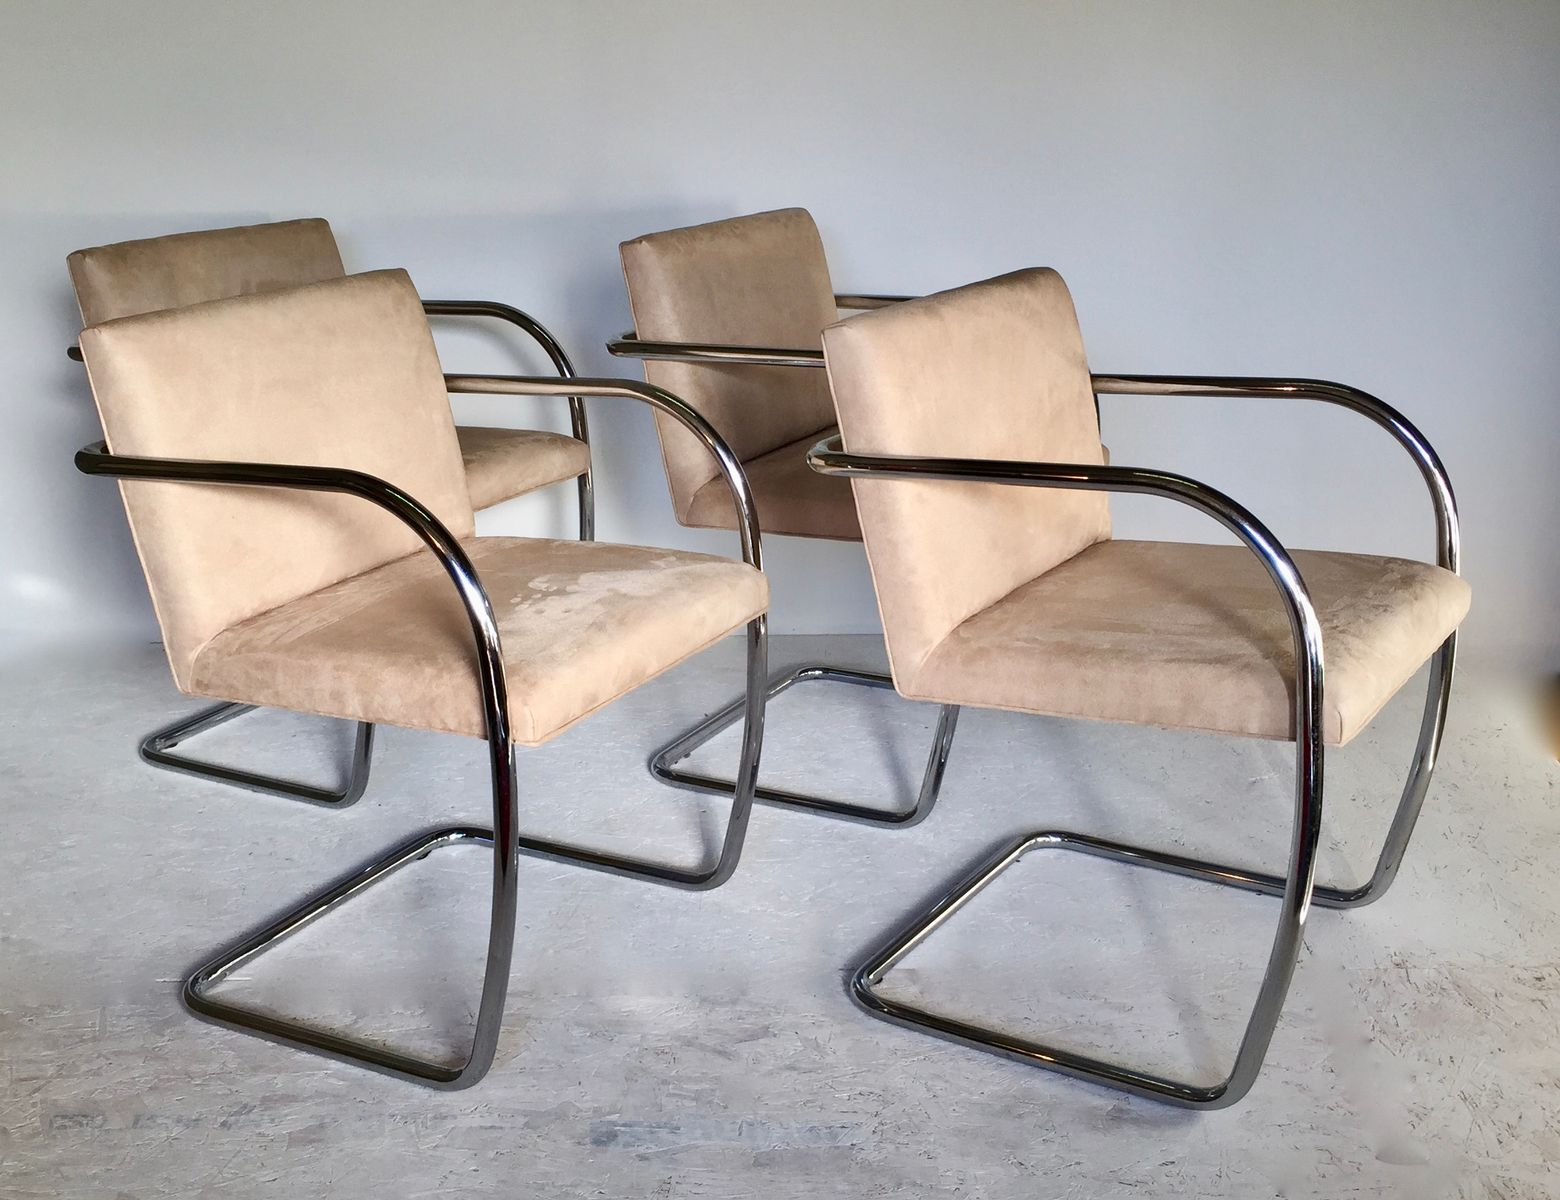 Chrome chairs 1980s set of 4 for sale at pamono for 1980s chair